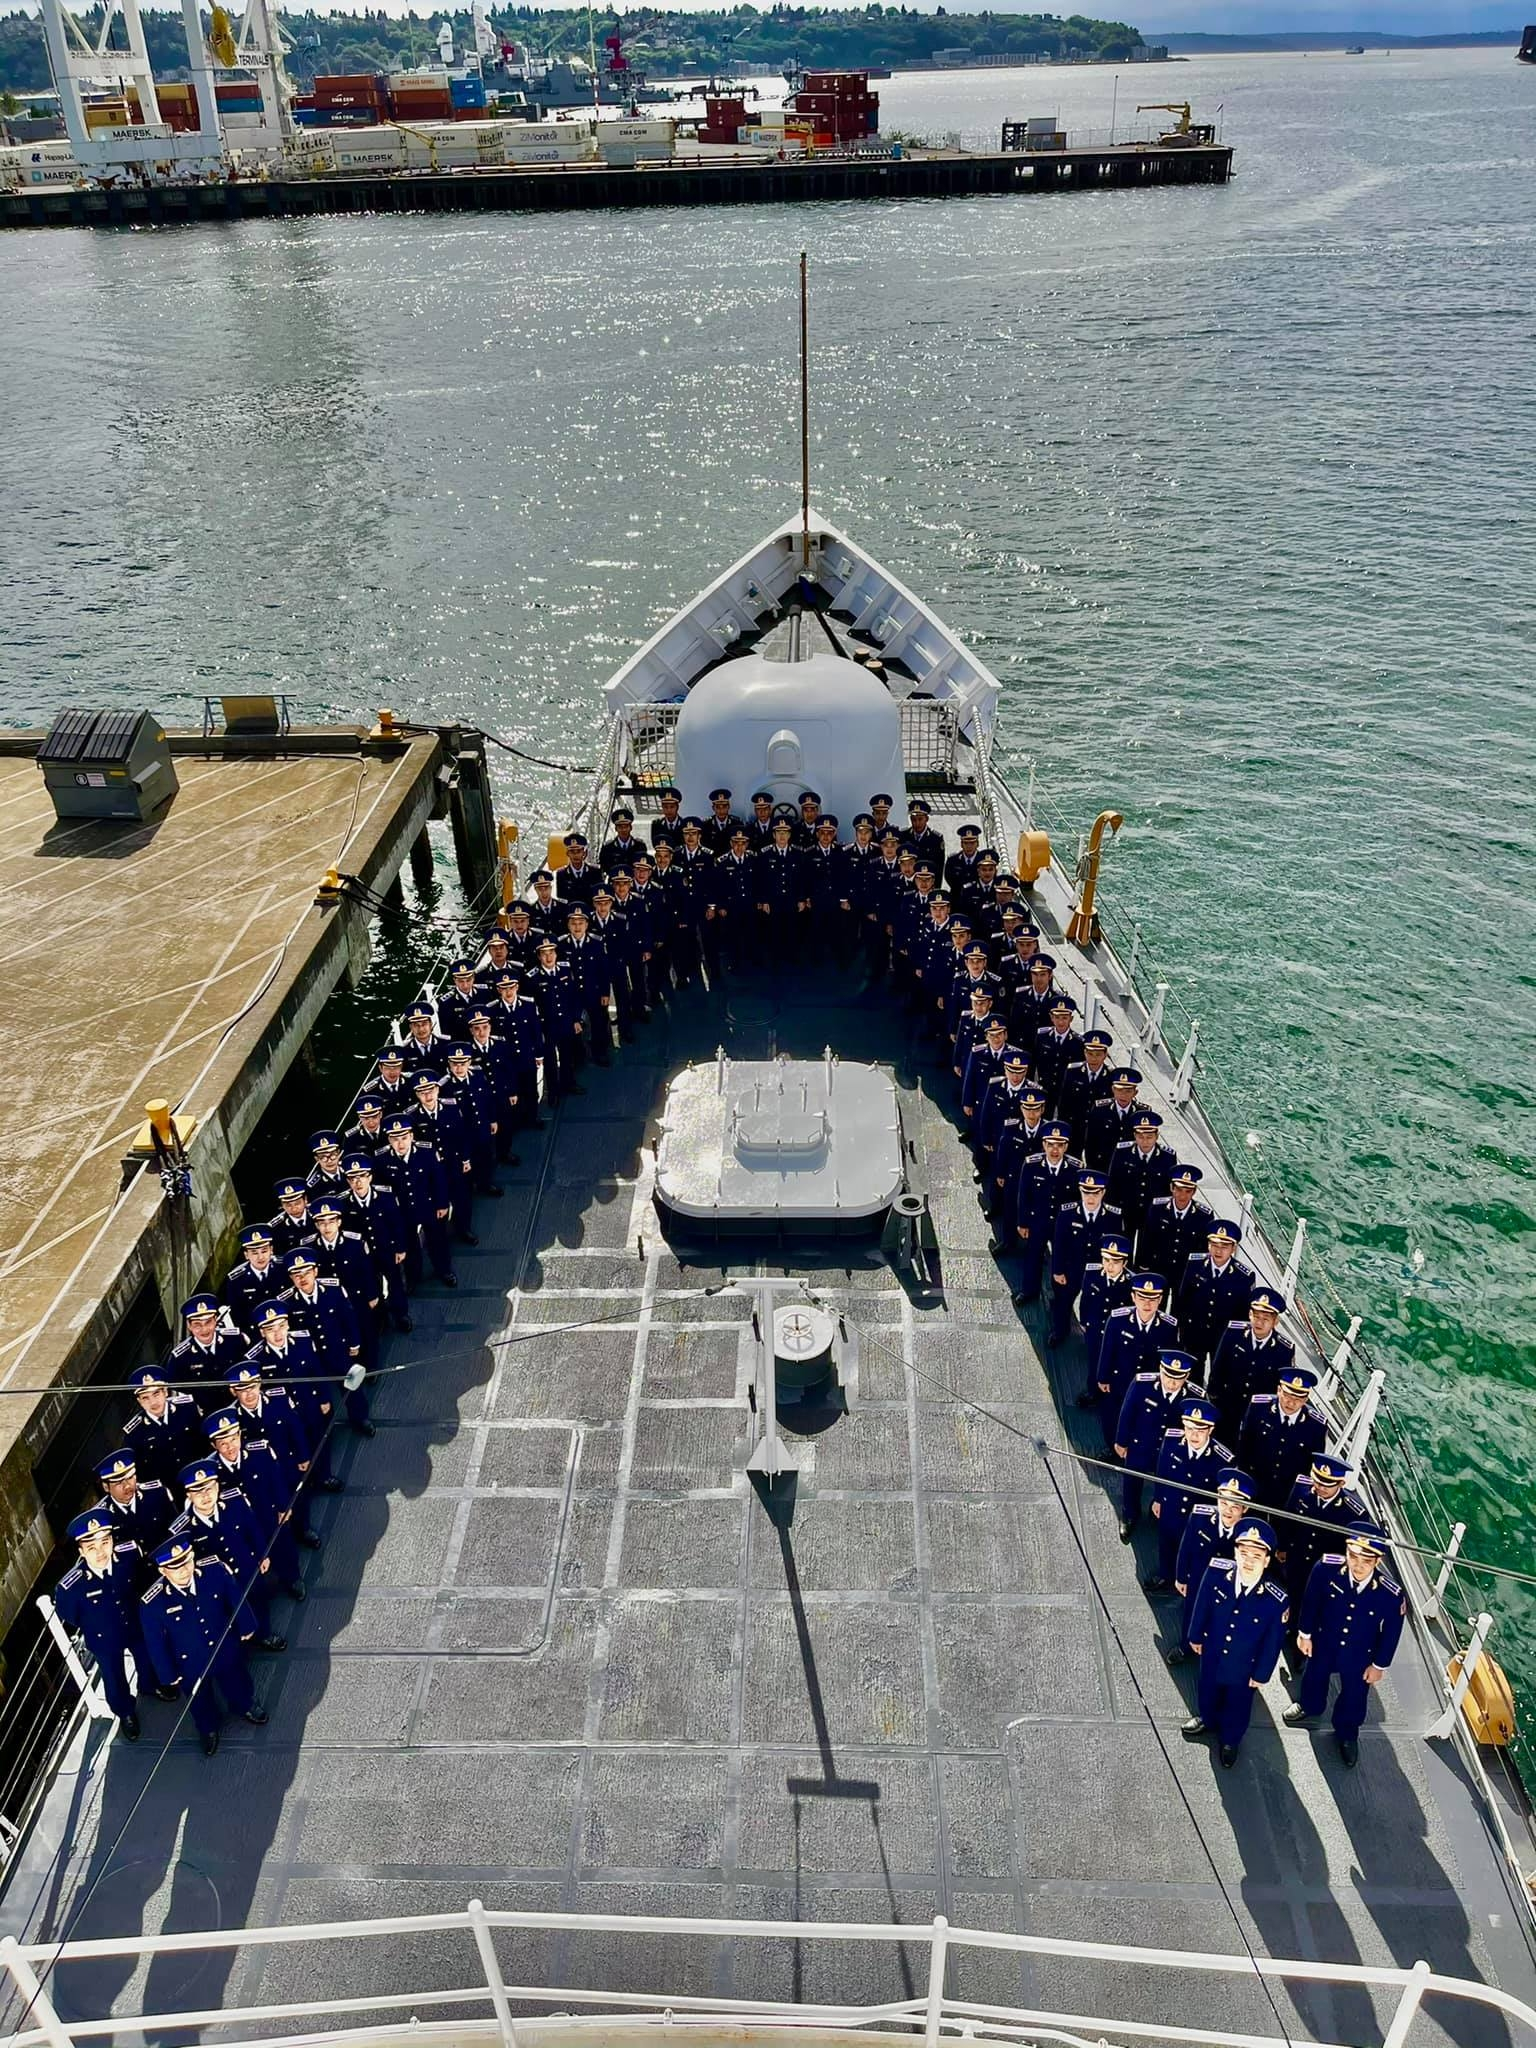 CSB 8021 Patrol Vessel about to depart for Vietnam